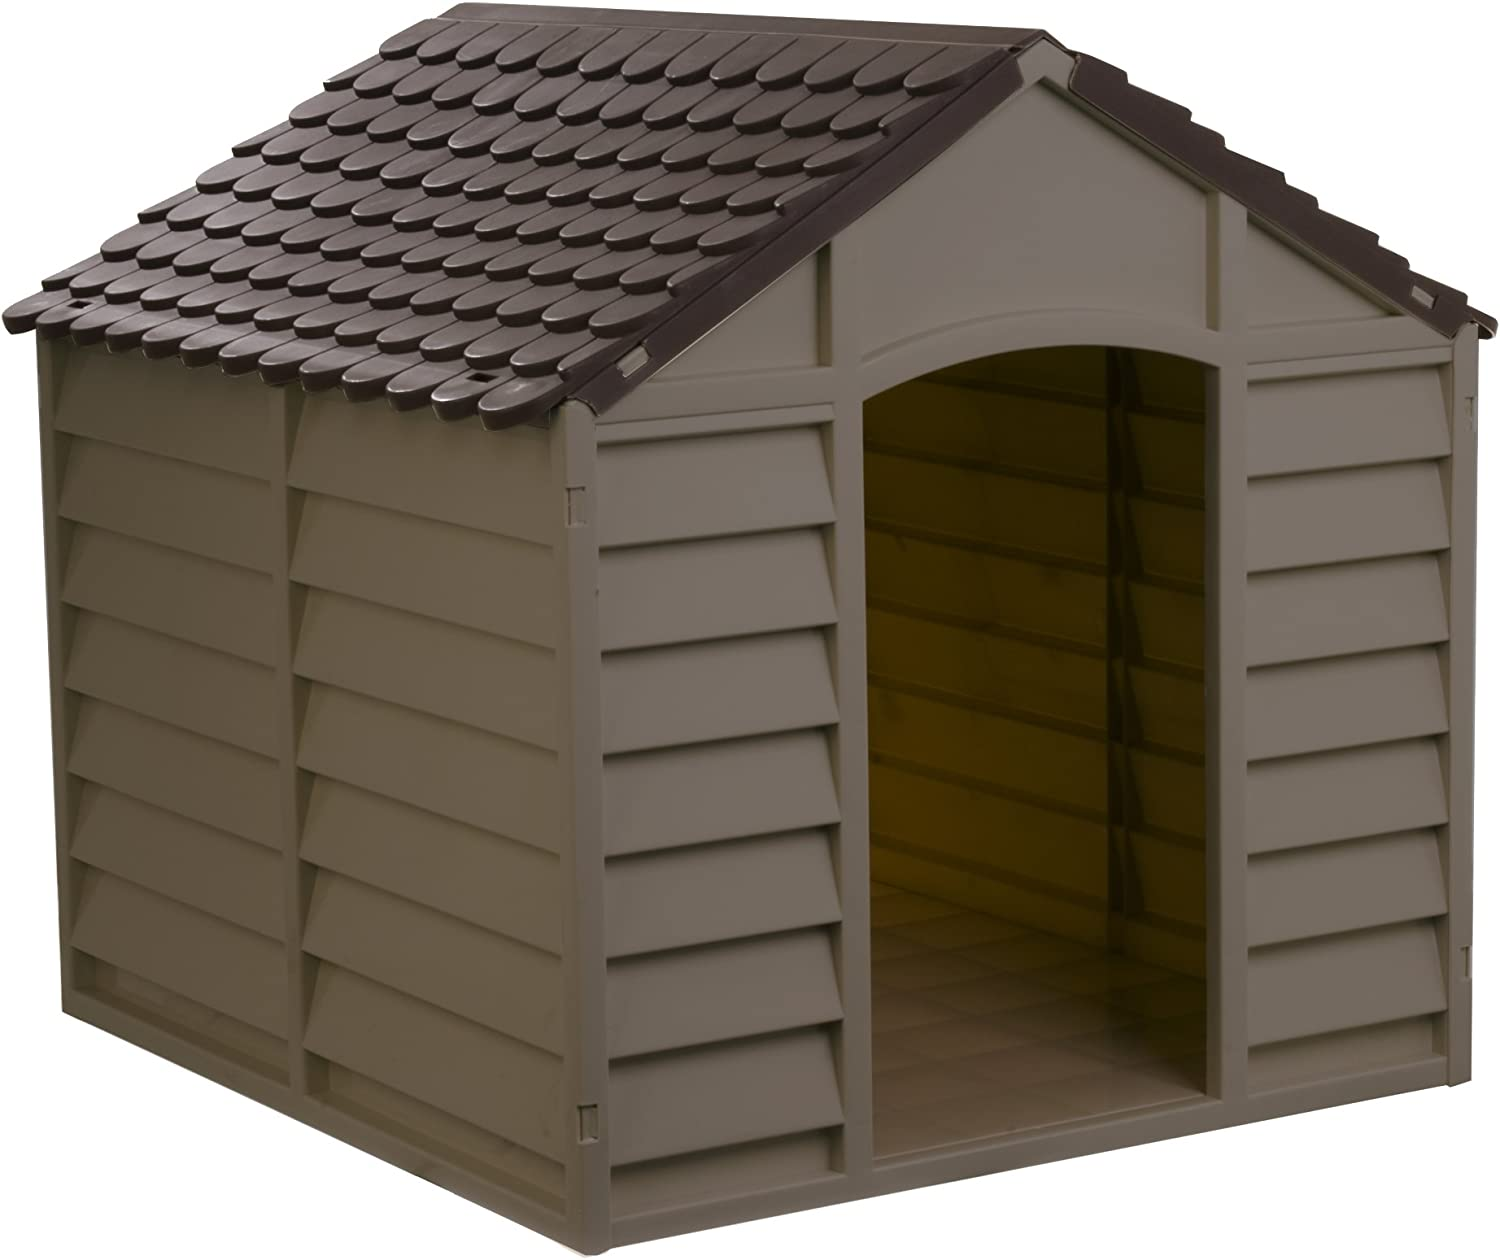 Starplast Mocha Brown Large Dog House Kennel